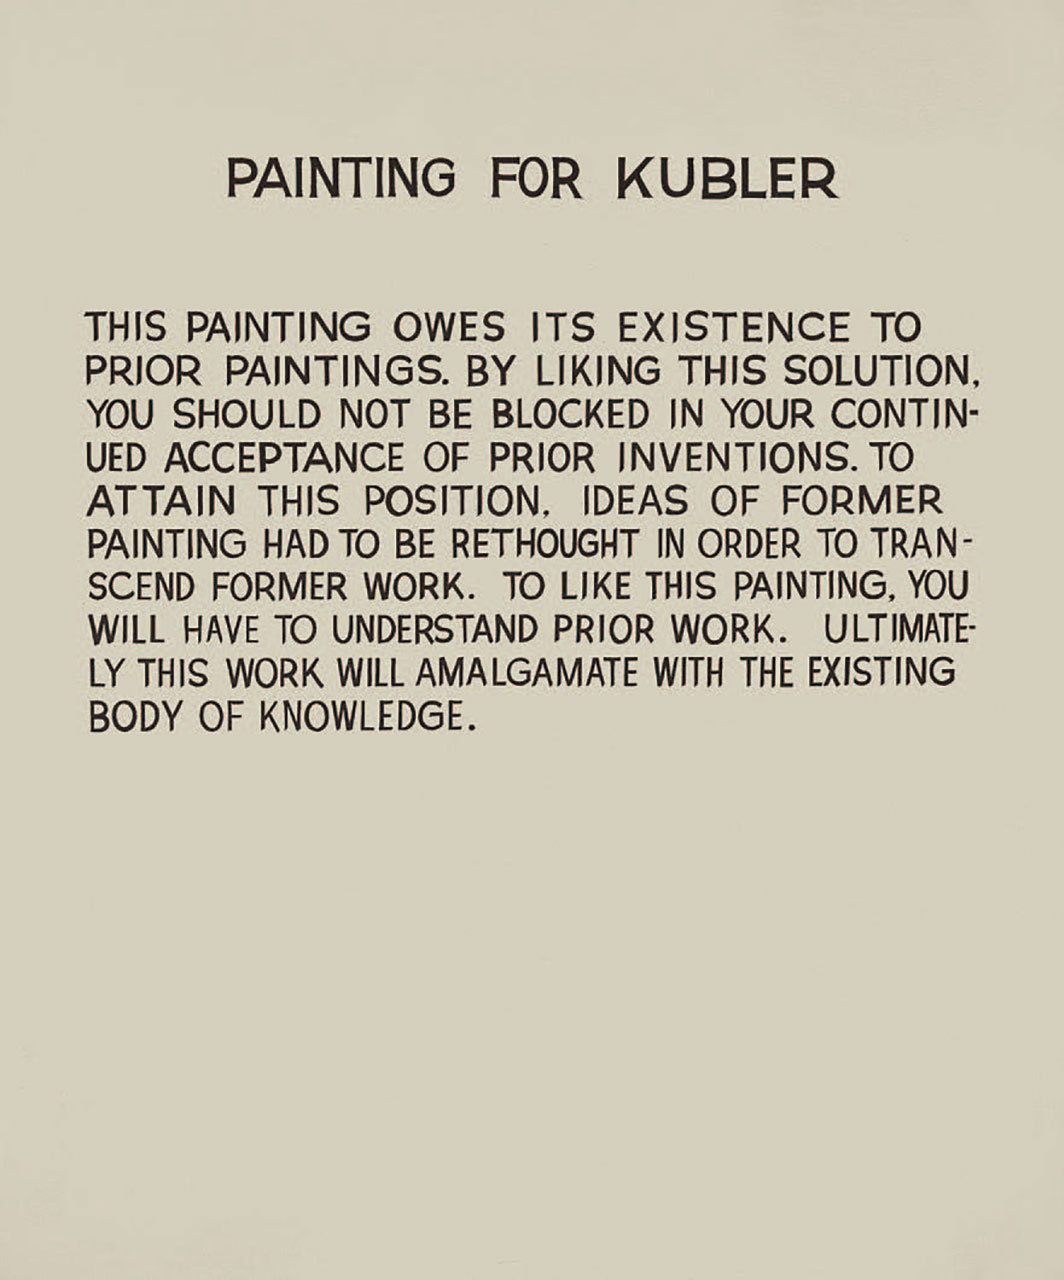 "John Baldessari, Painting for Kubler, 1966–68, acrylic on canvas, 67 7⁄8 × 56 1⁄2"". © Estate of John Baldessari."